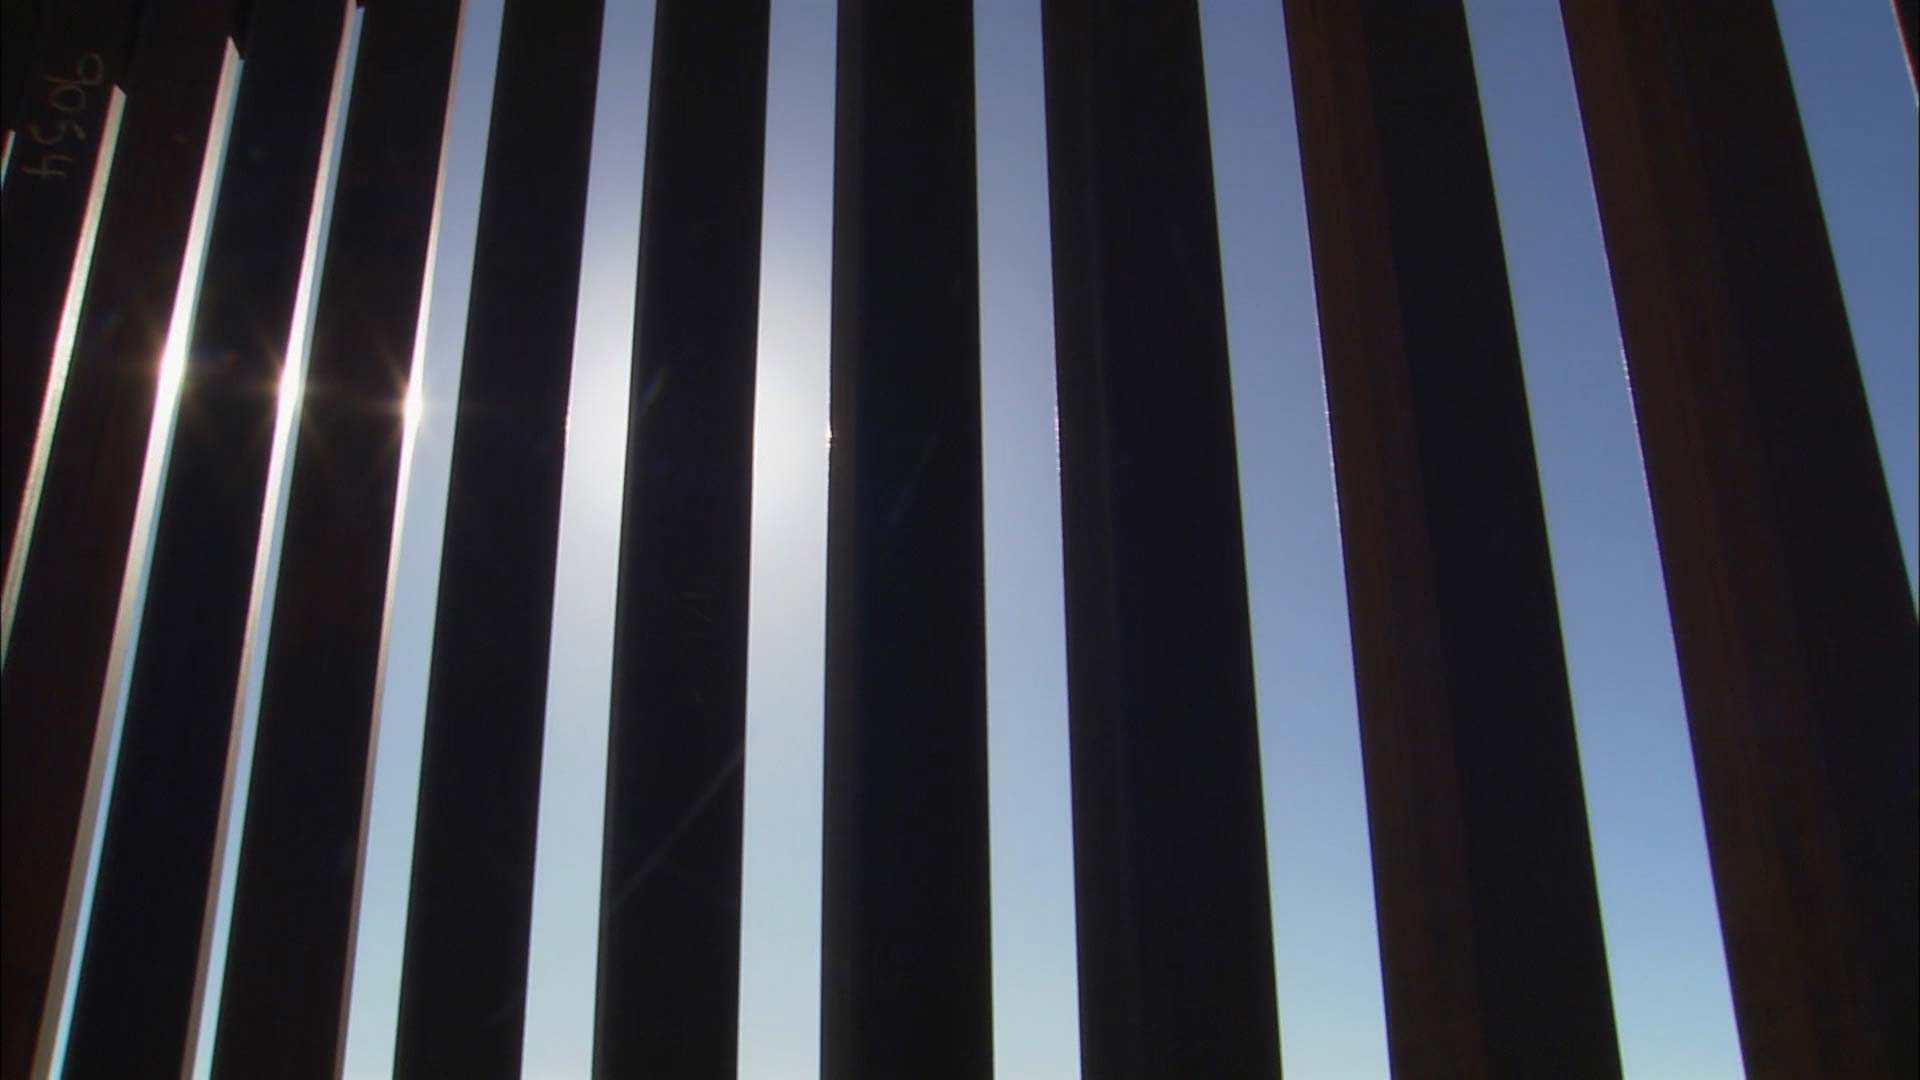 A section of the barrier separating the U.S. and Mexico.